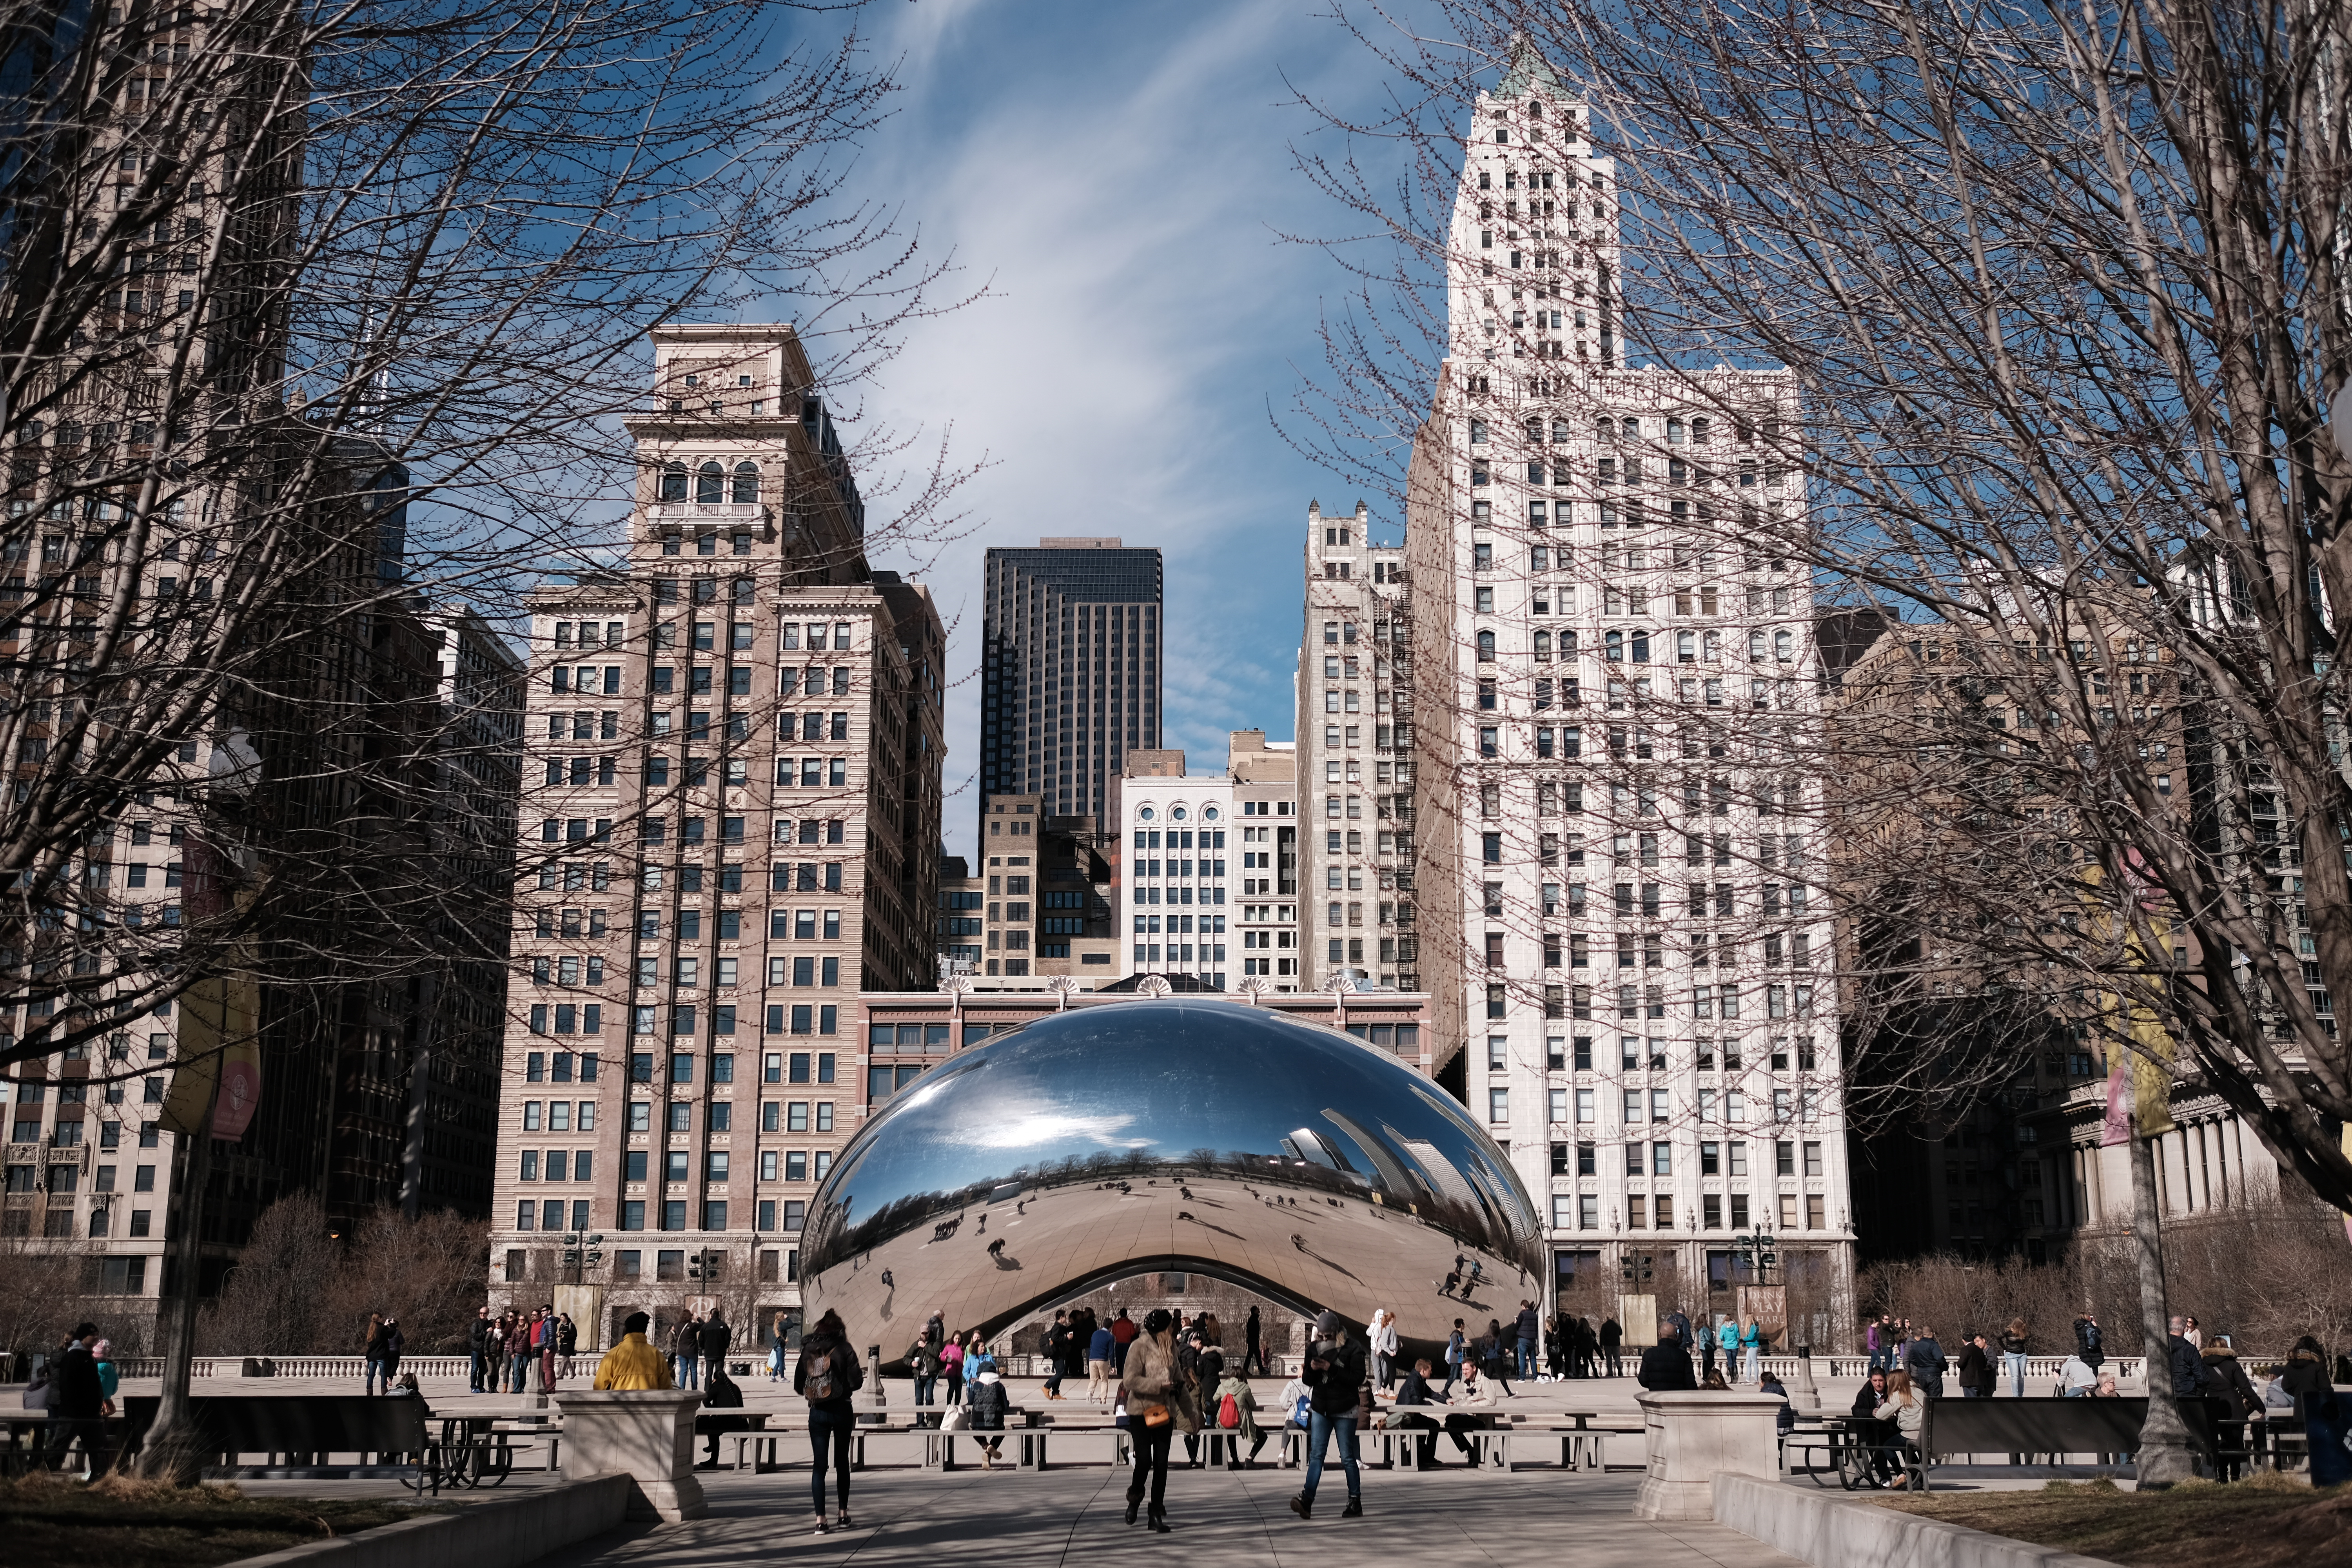 Derek snapped a picture of Cloud Gate during his recent trip to Chicago.